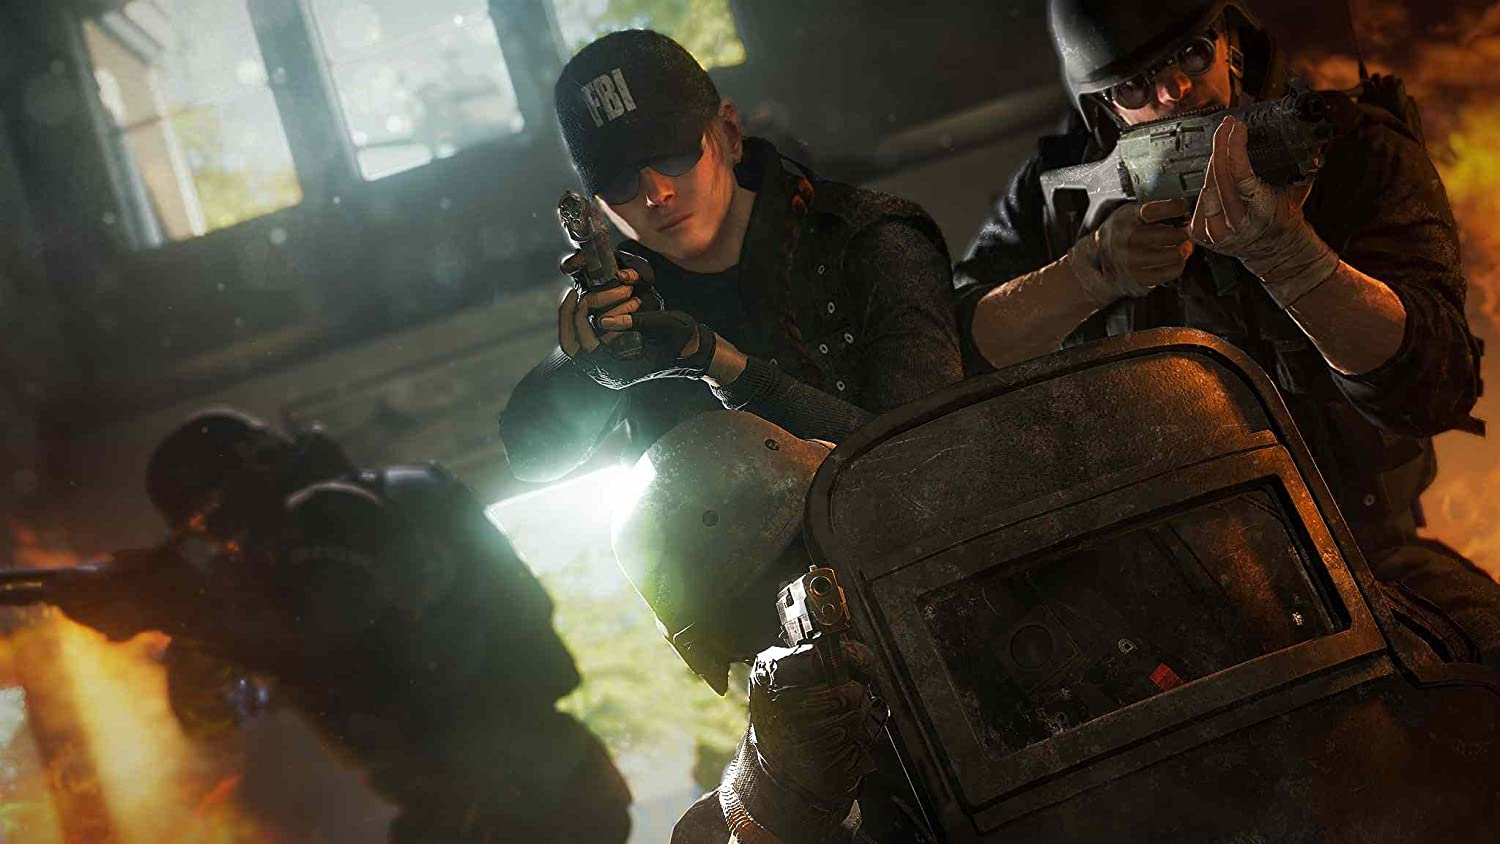 36位:ユービーアイソフト『Tom Clancy's Rainbow Six Siege』